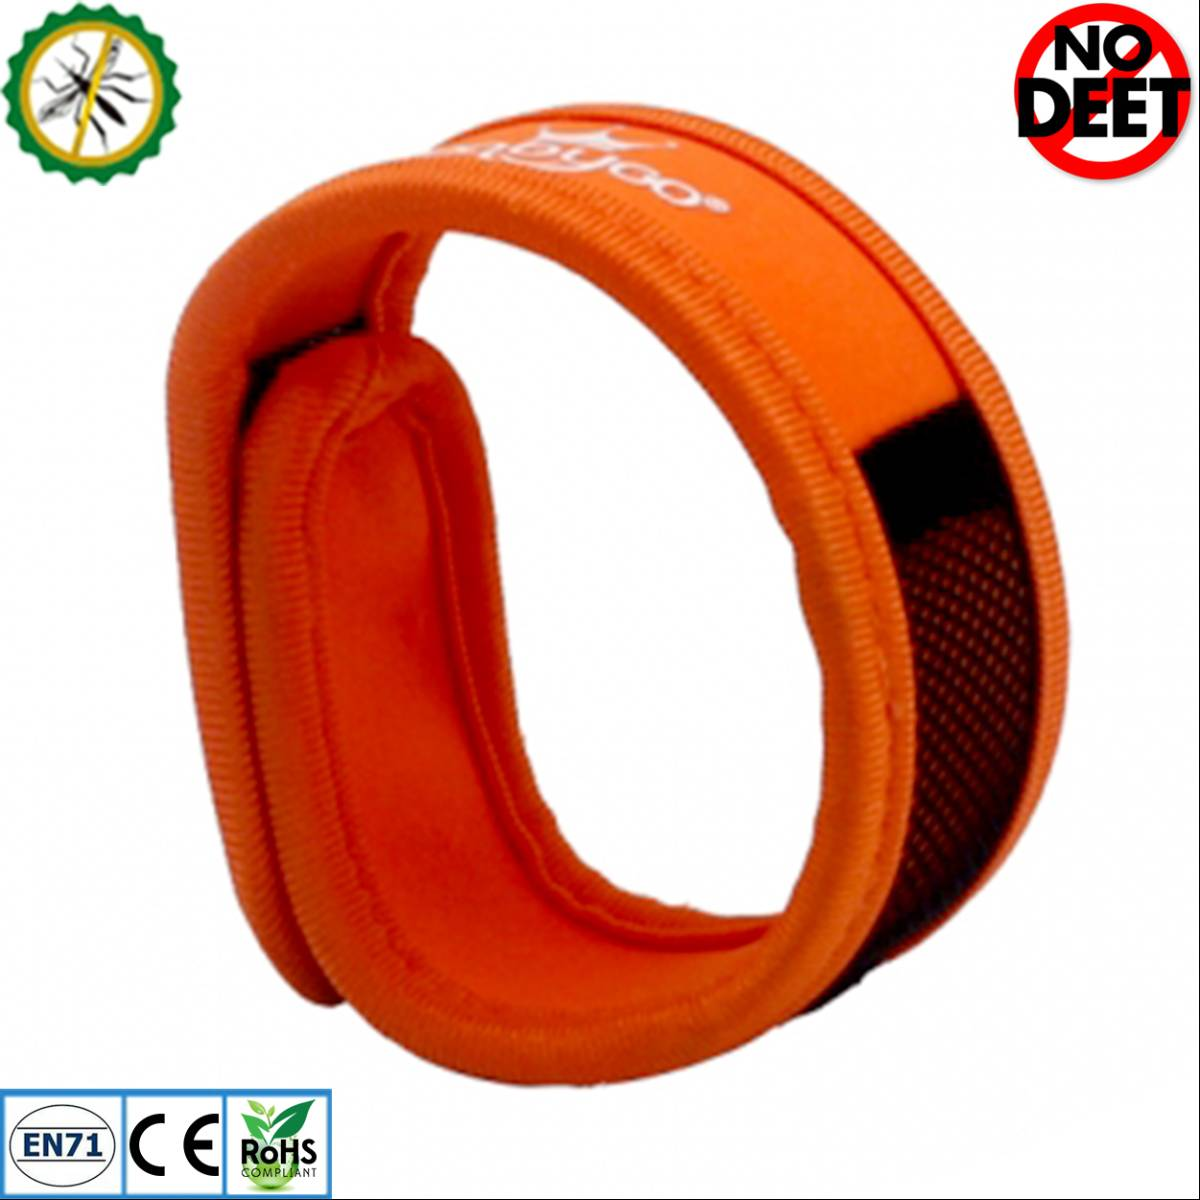 Babygo Neoprene Mosquito Repellent Wristband Orange (gelang Anti Nyamuk)